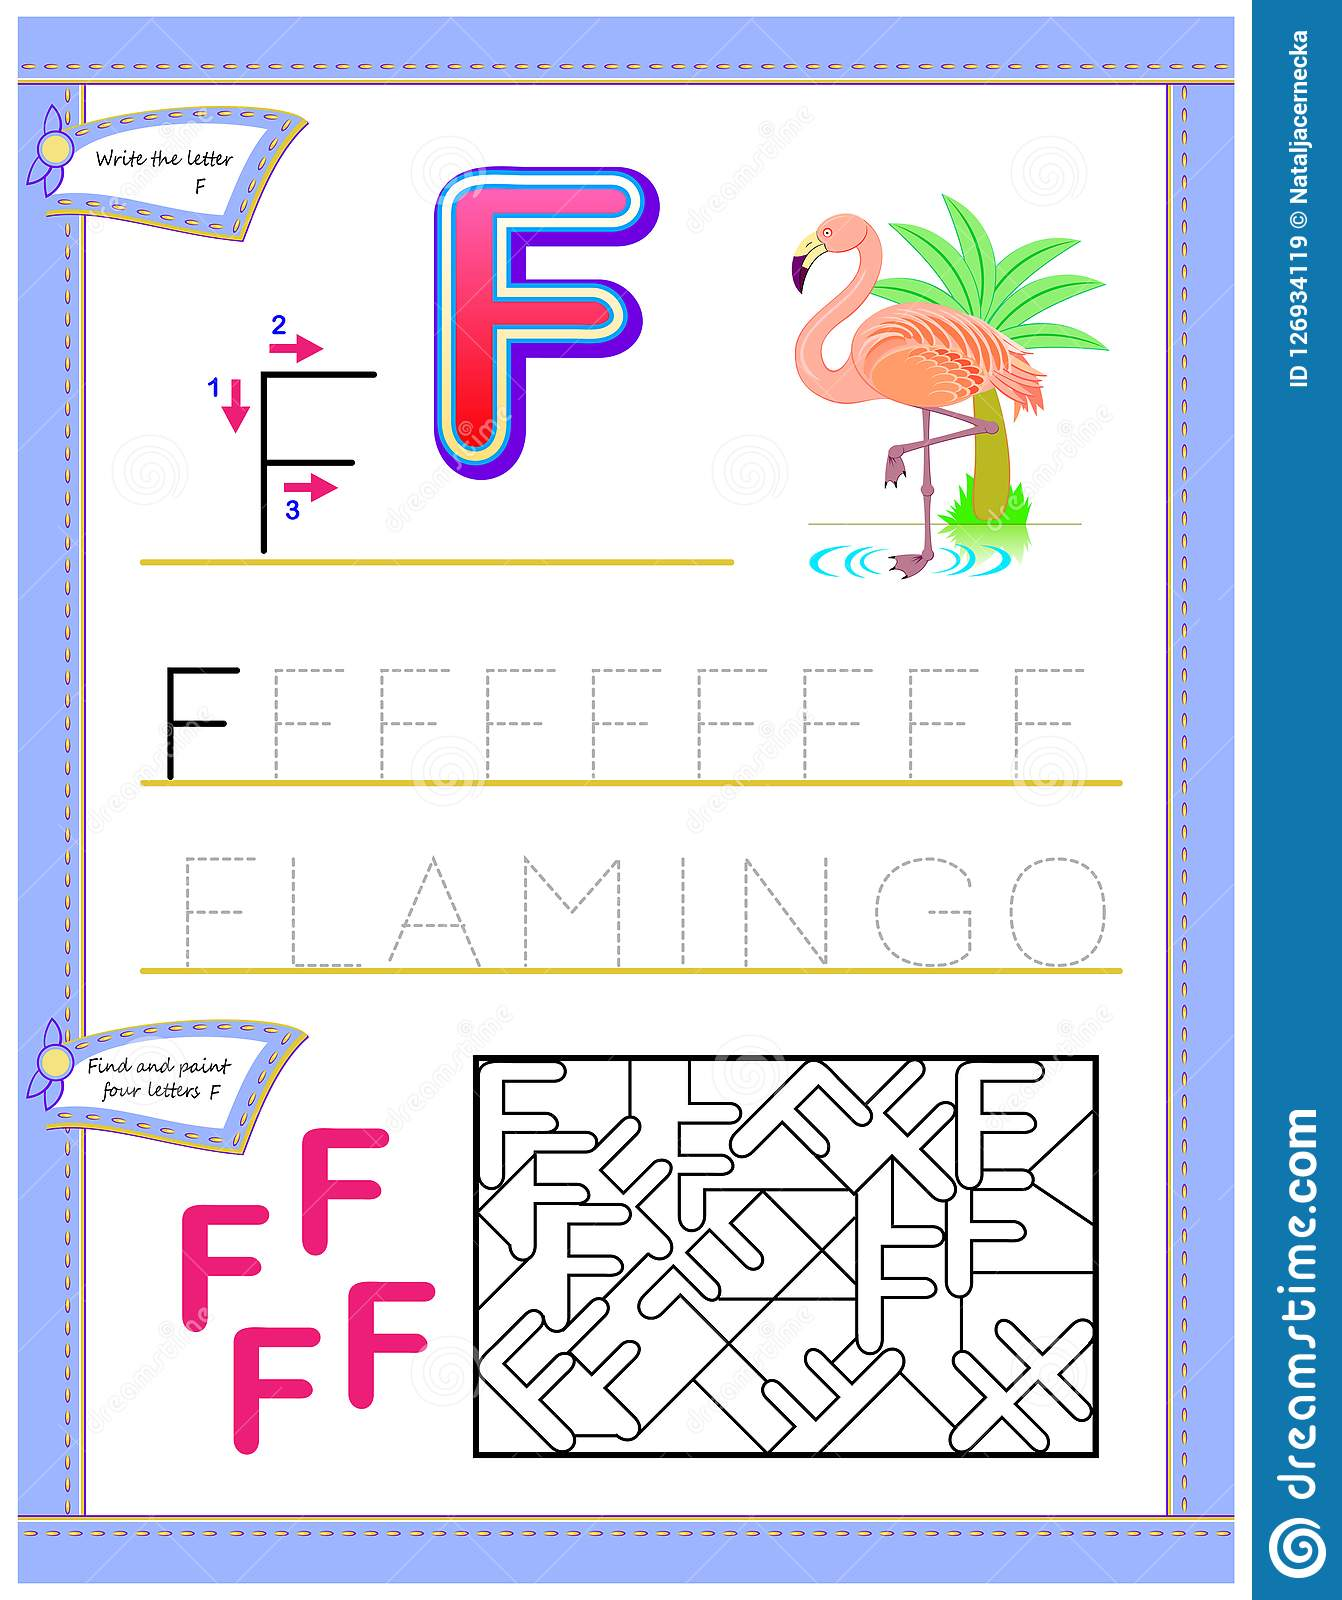 Worksheet For Kids With Letter F For Study English